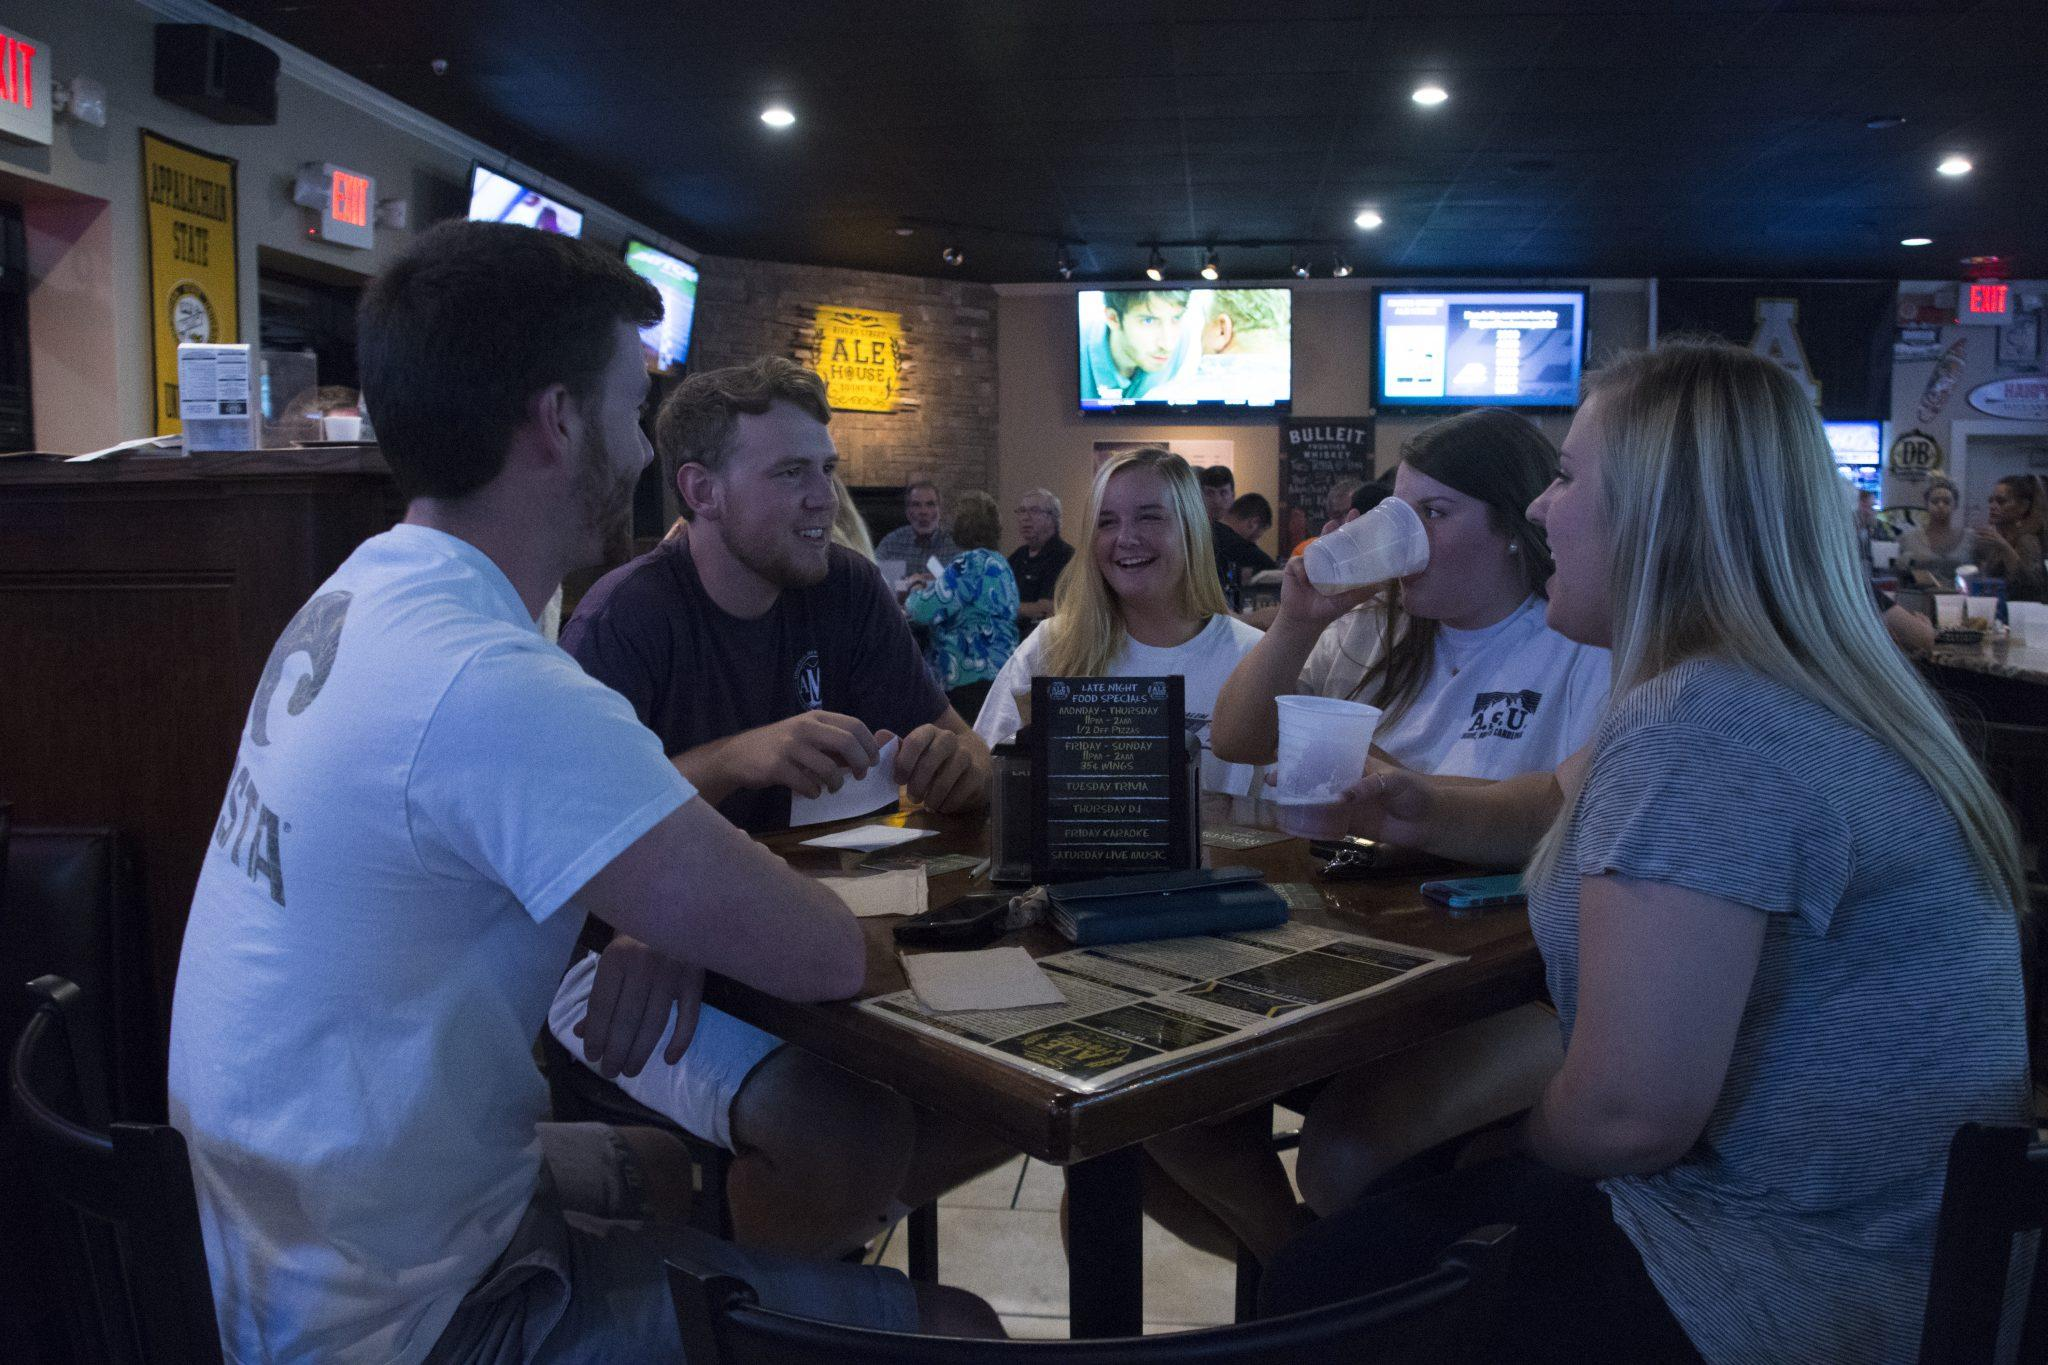 Chris Deal, Drew McCarty, Mackenzie Reid, Hannah Seipel and Sarah Winter form a group for trivia night at Rivers Street Ale House.